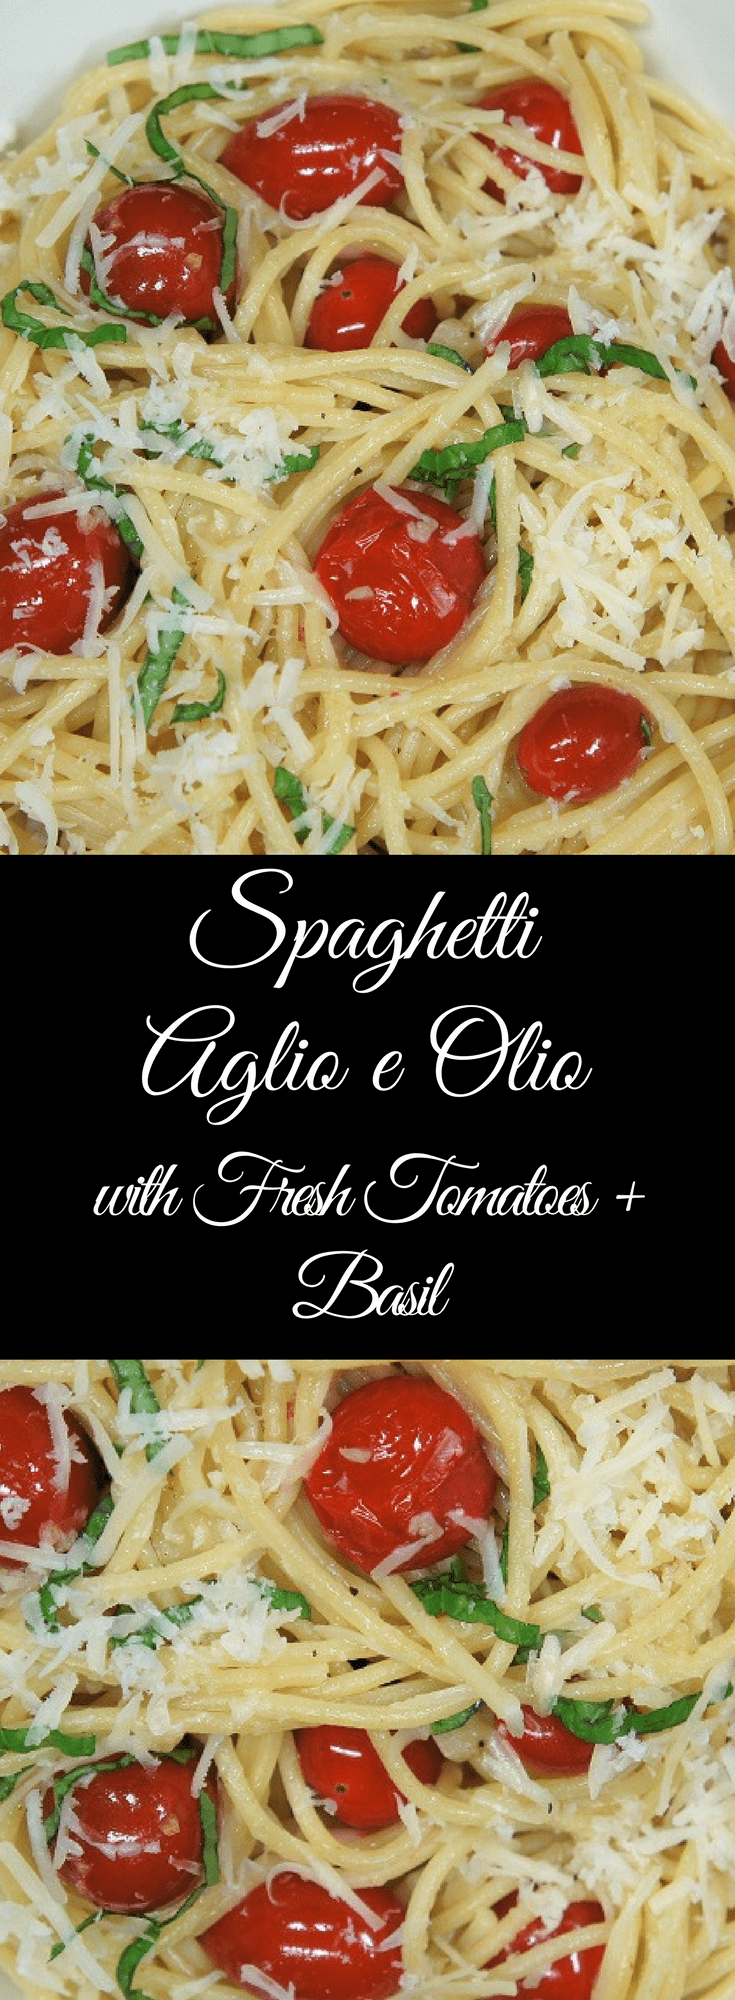 If you're looking for a quick, affordable and delicious meal to serve your family on busy weeknights, this spaghetti aglio e olio with fresh tomatoes & basil is just the thing. #spaghettiaglioeolio #aglioeolio #spaghetti #pastadinners #pasta #easydinners #garlicpasta